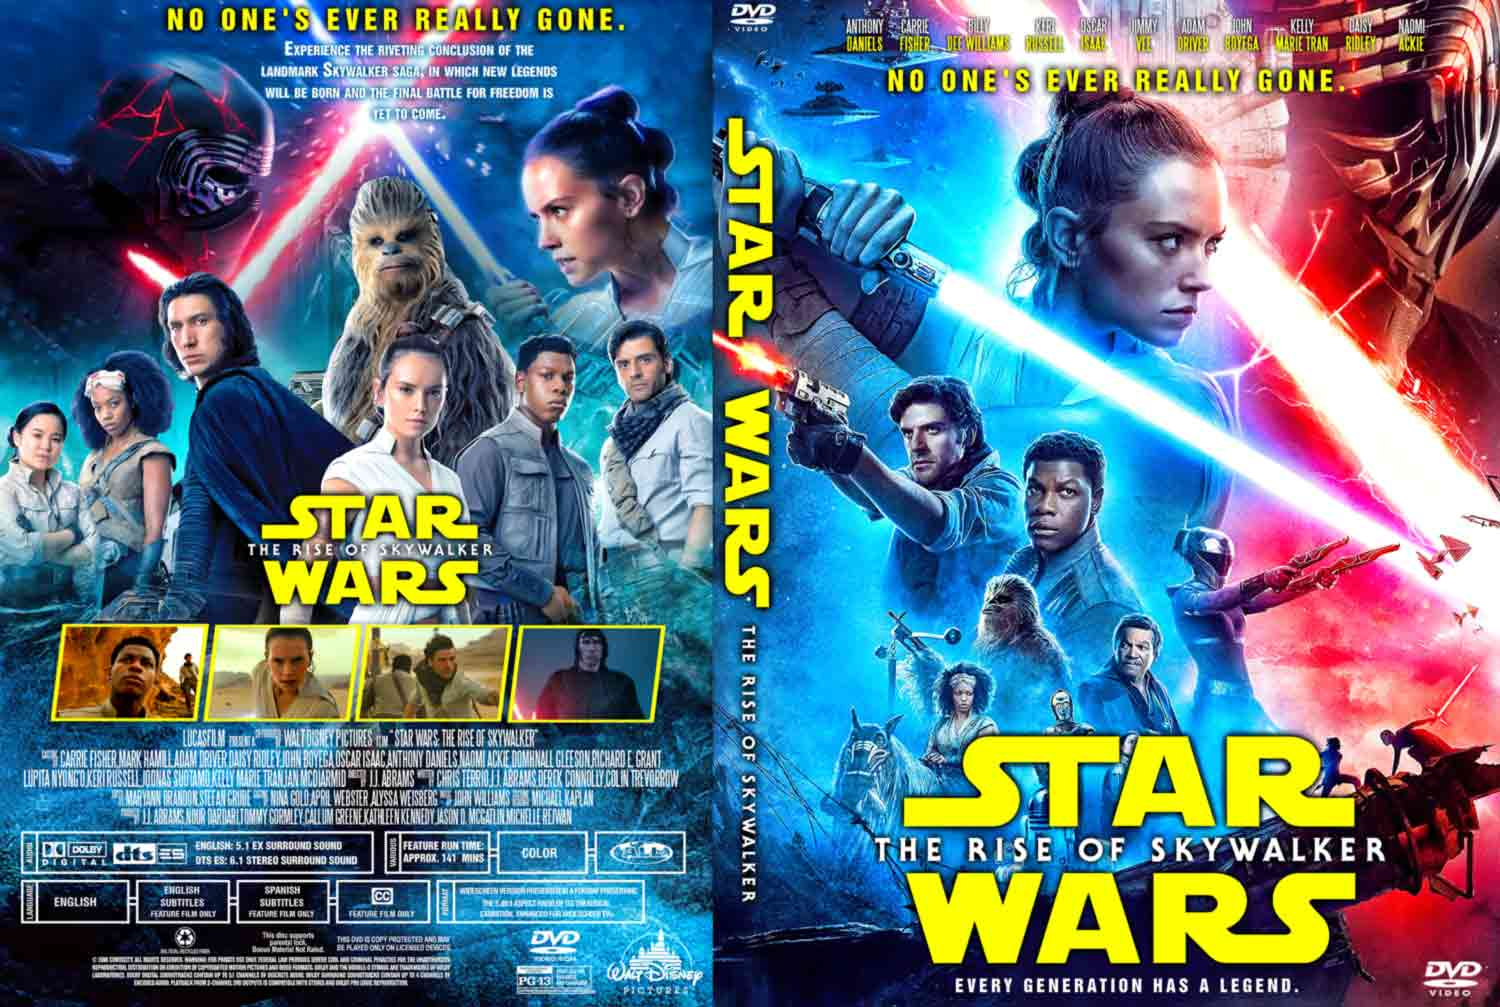 Star Wars Episode Ix The Rise Of Skywalker Dvd Cover Cover Addict Free Dvd Bluray Covers And Movie Posters